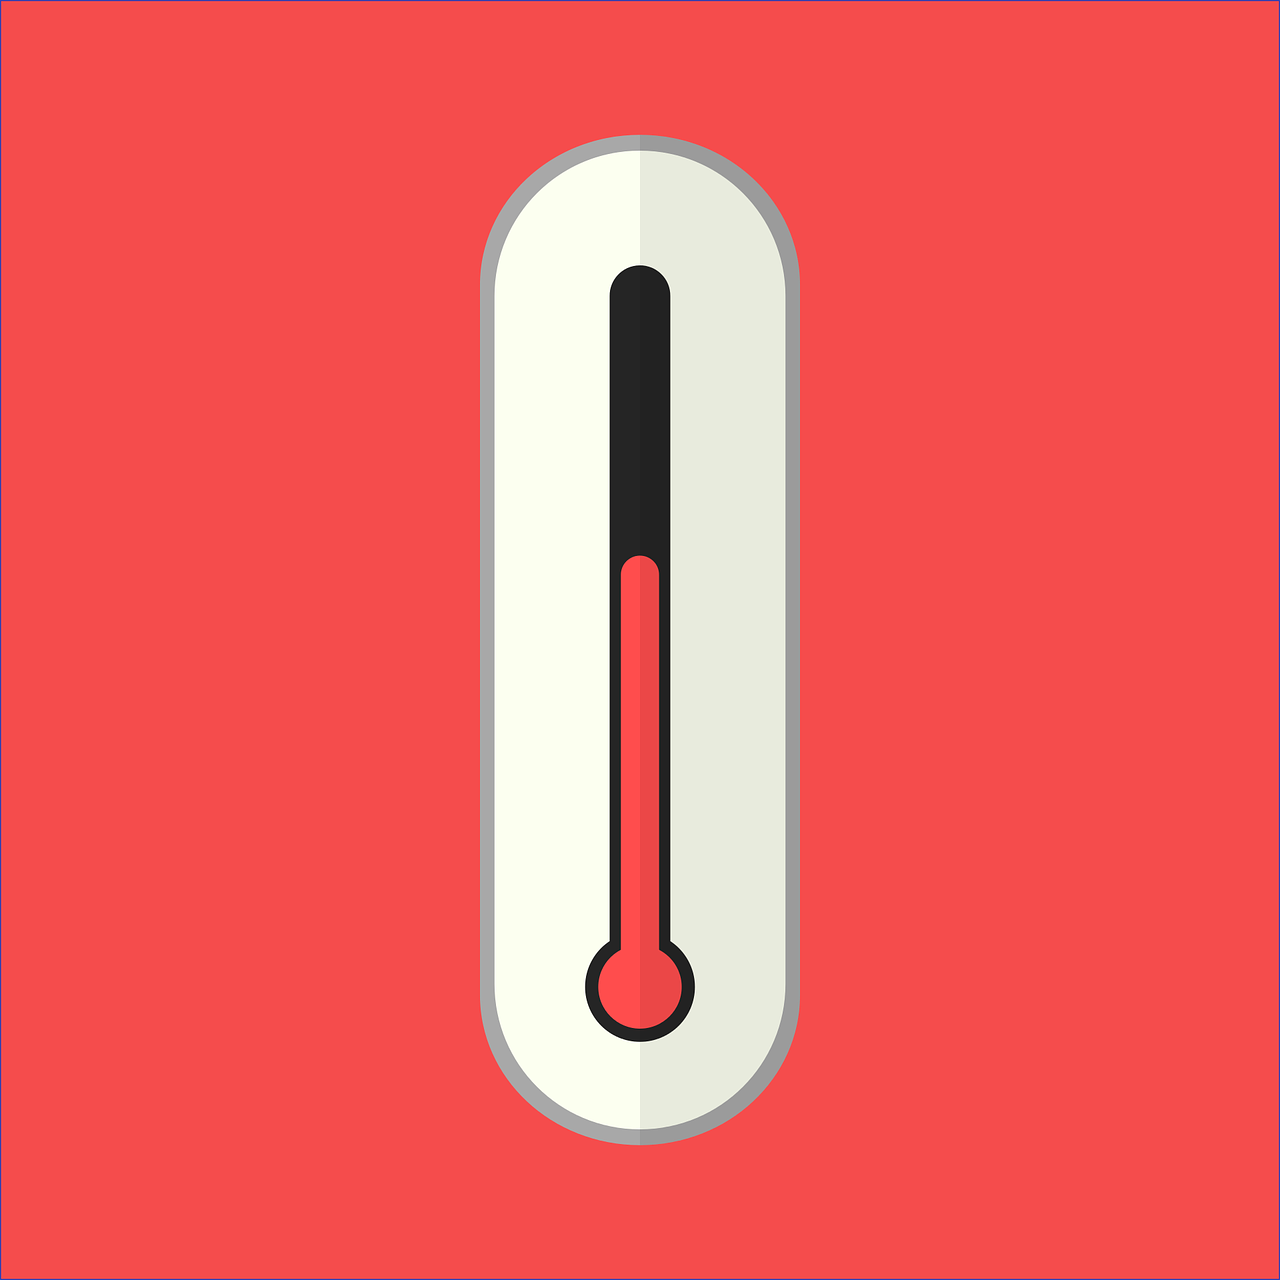 What's The Best Workplace Temperature?